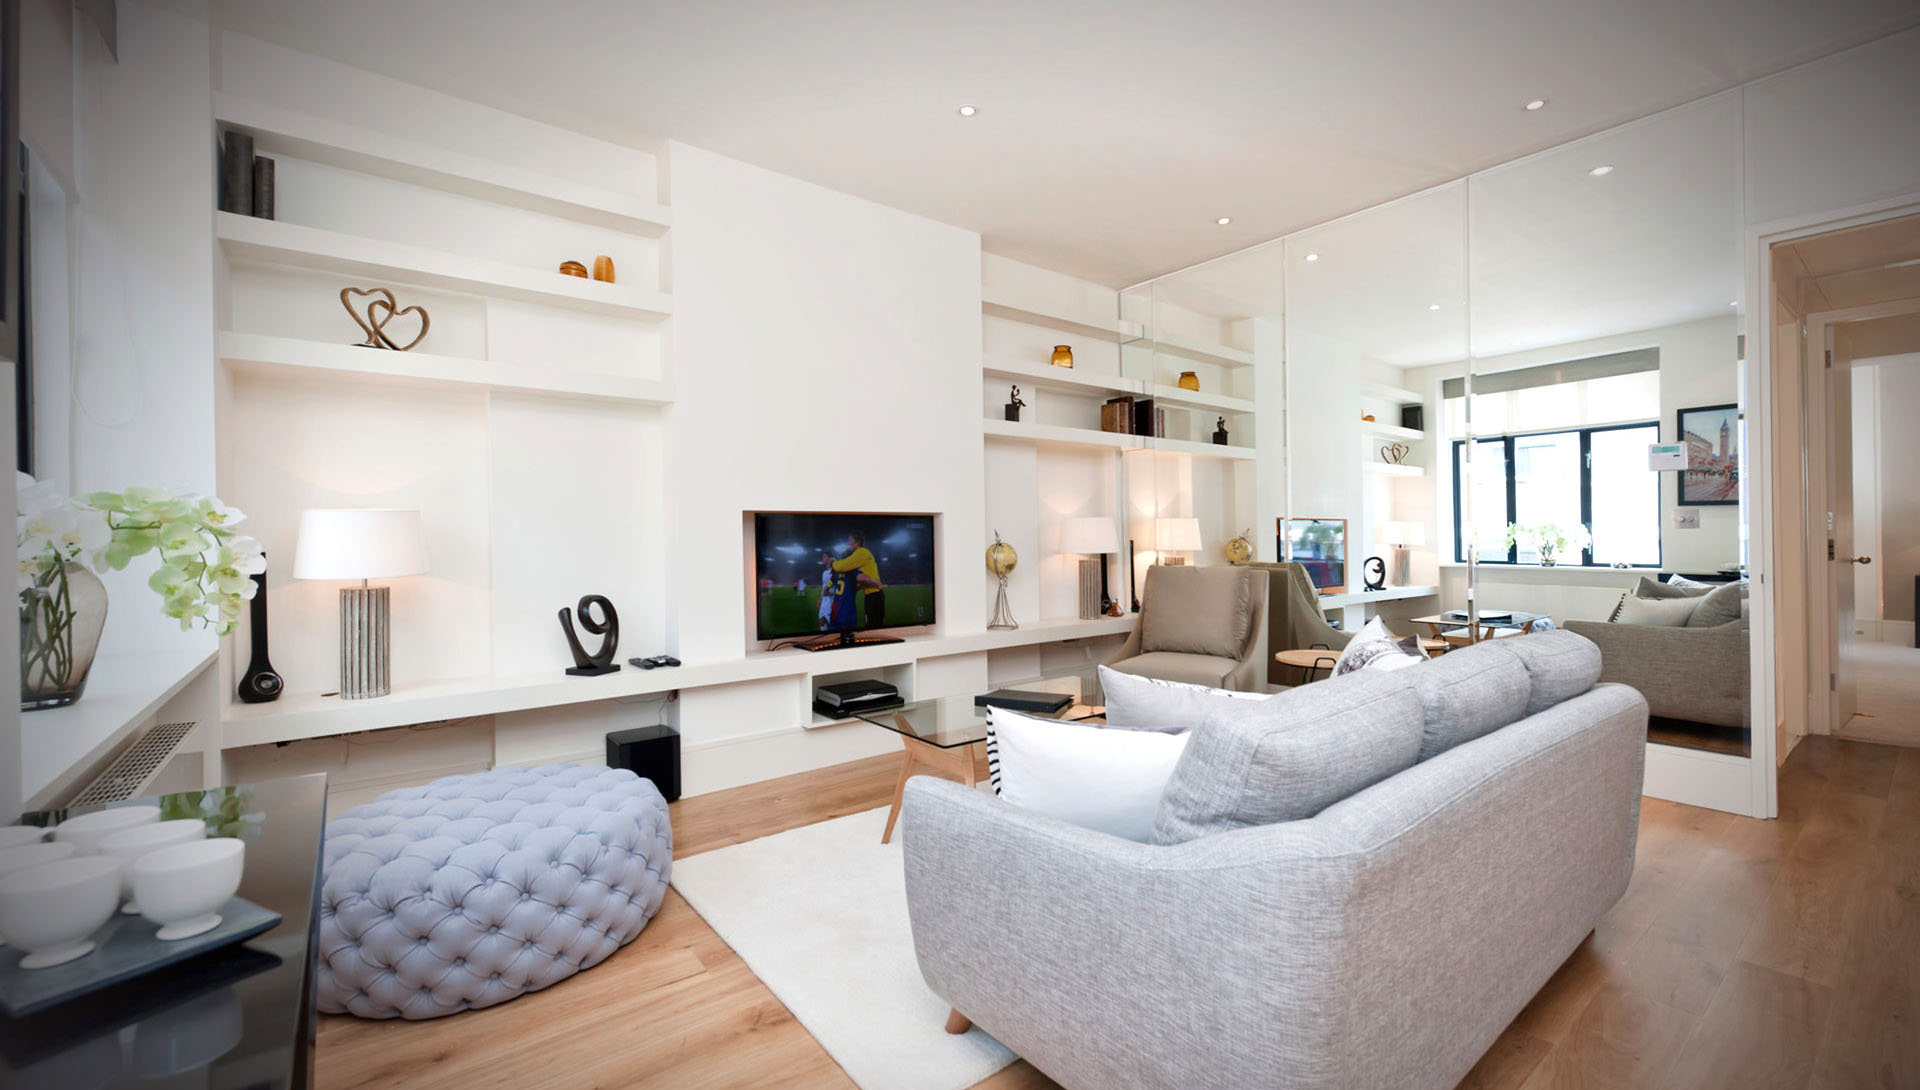 Luxury Serviced Apartments In Camden 5 Star Accommodation Central London Apartments